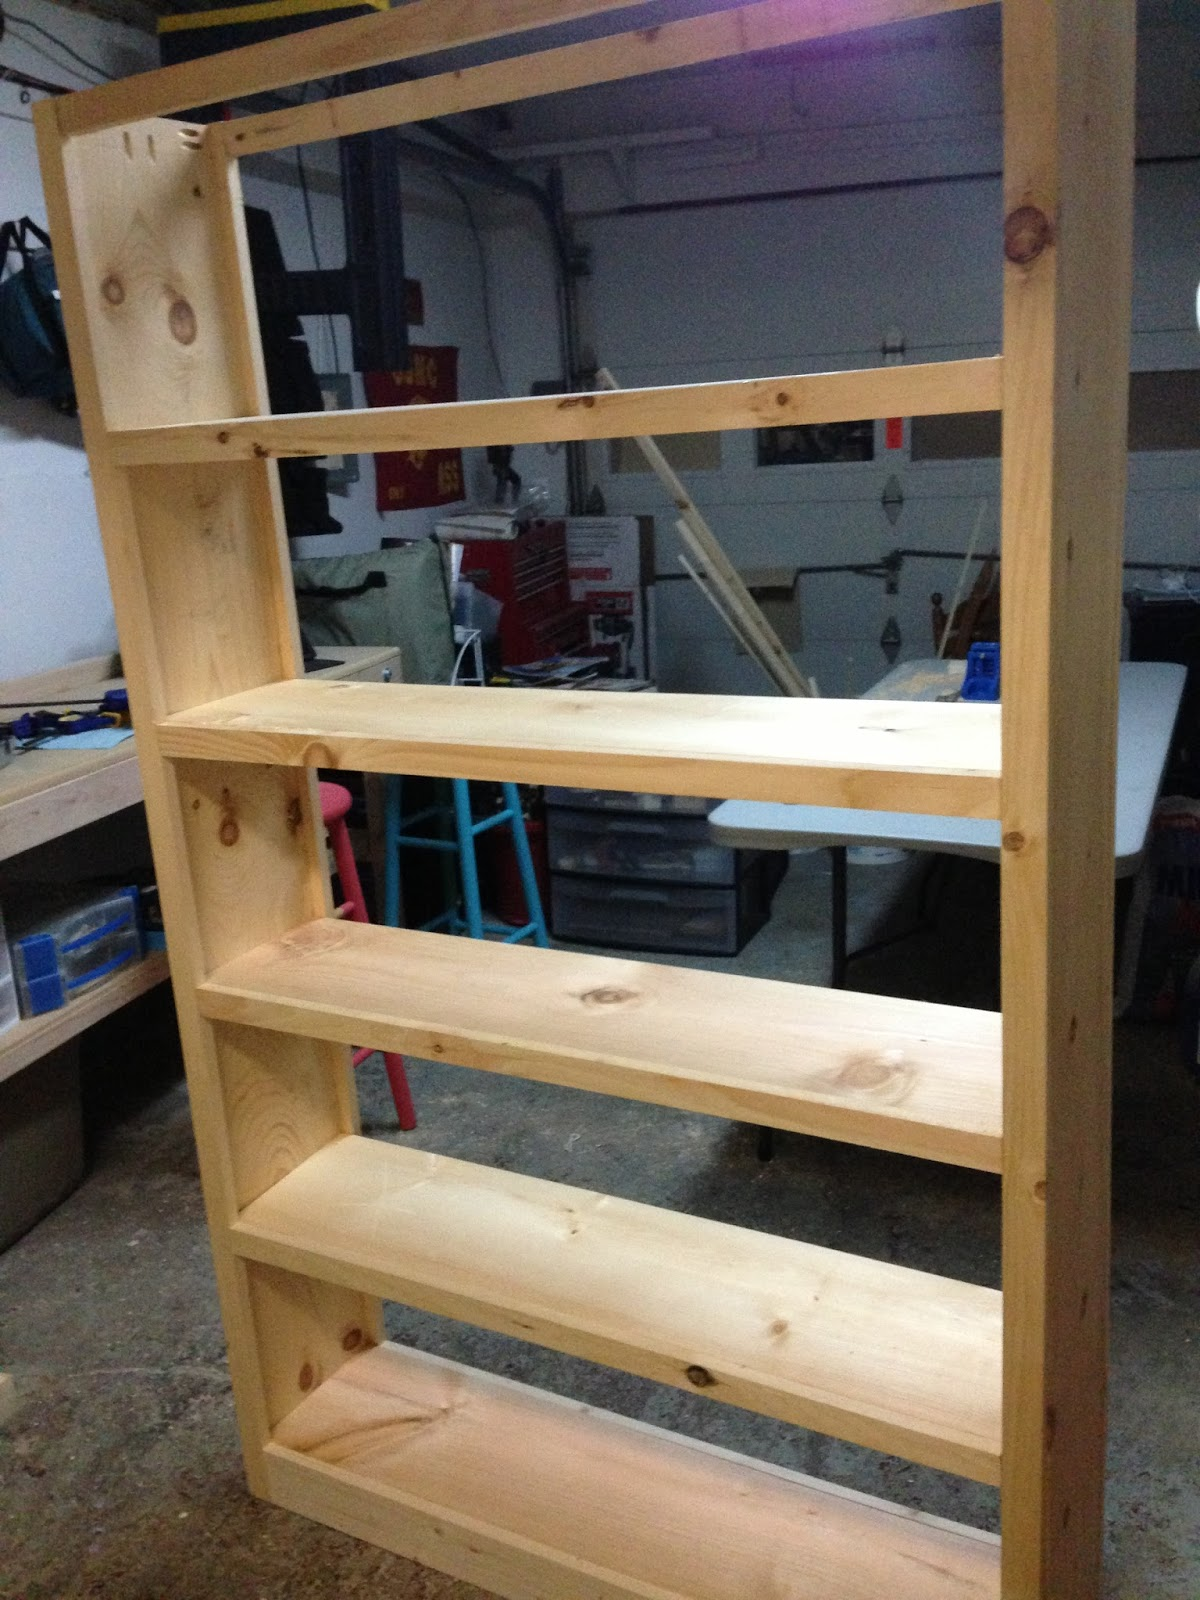 Wood n things 6 foot tall book case for Build your own bookshelves plans